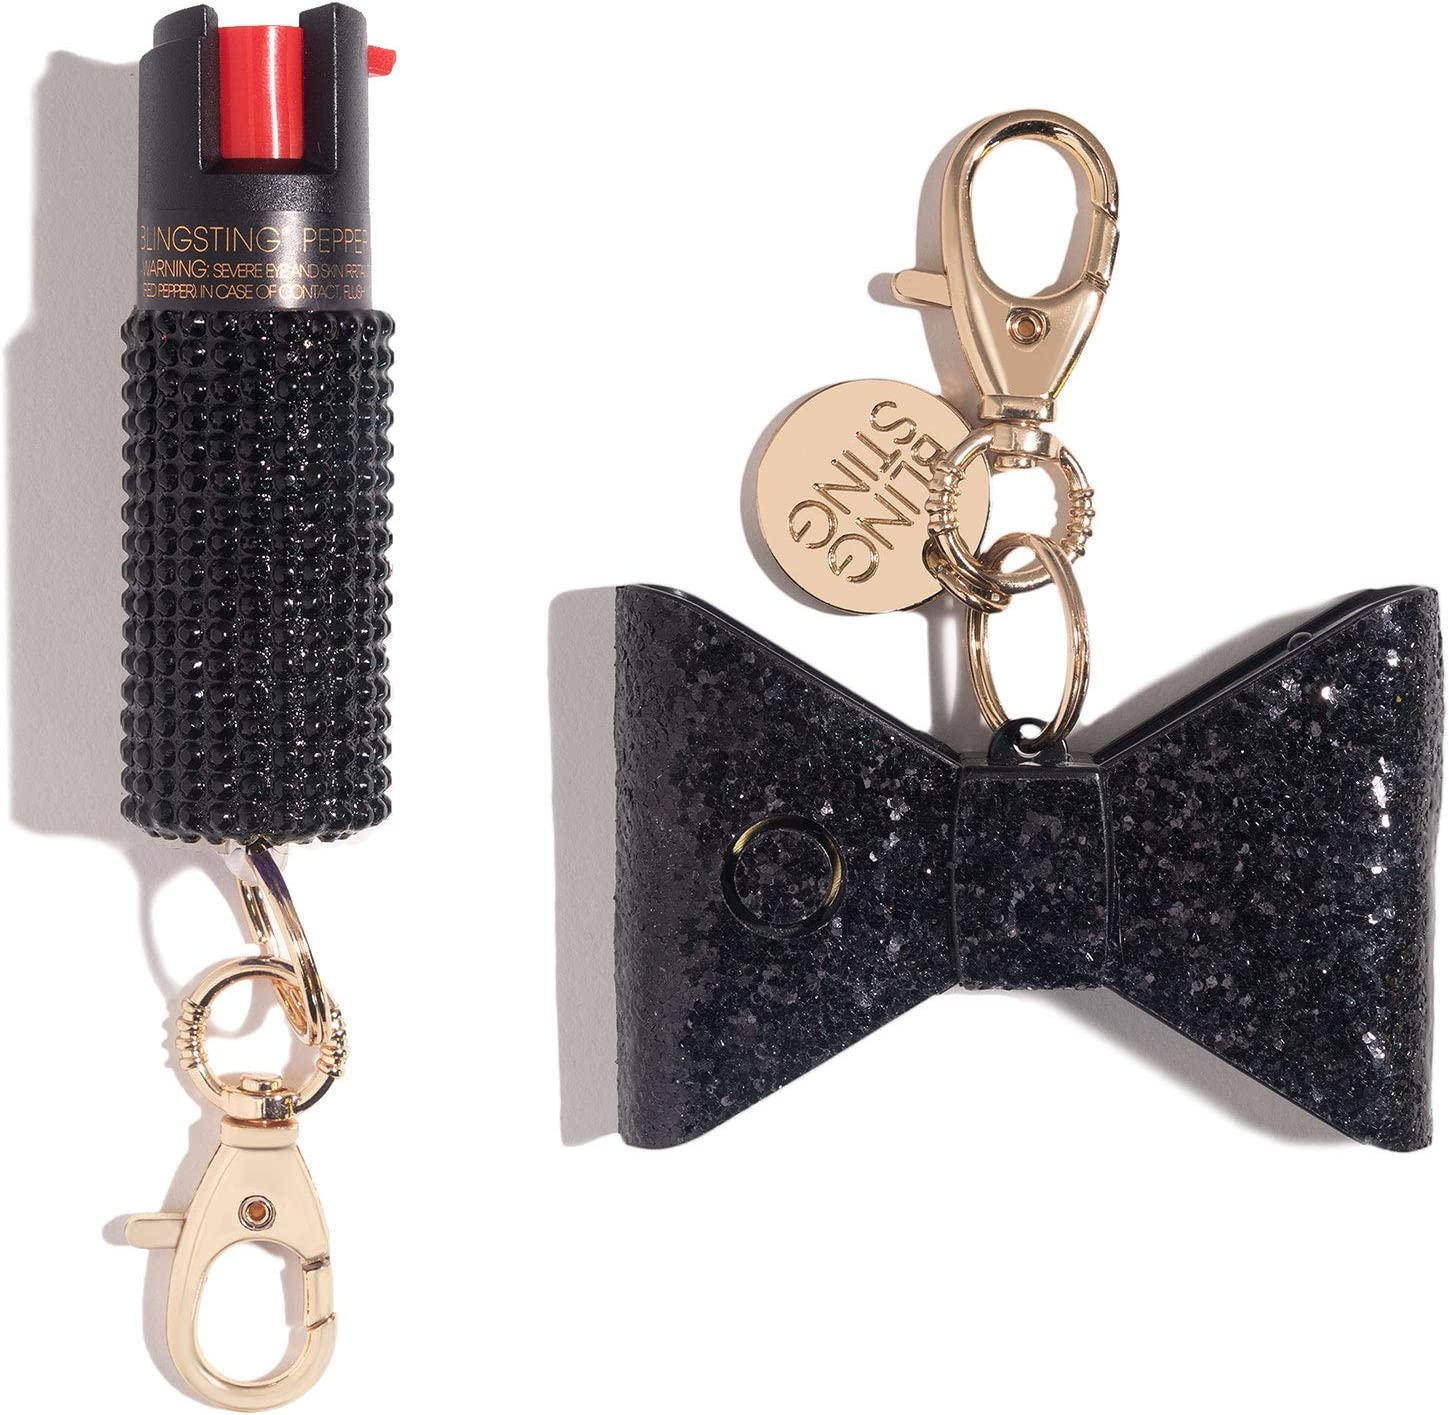 Amazon Com Blingsting Self Defense Set For Women Maximum